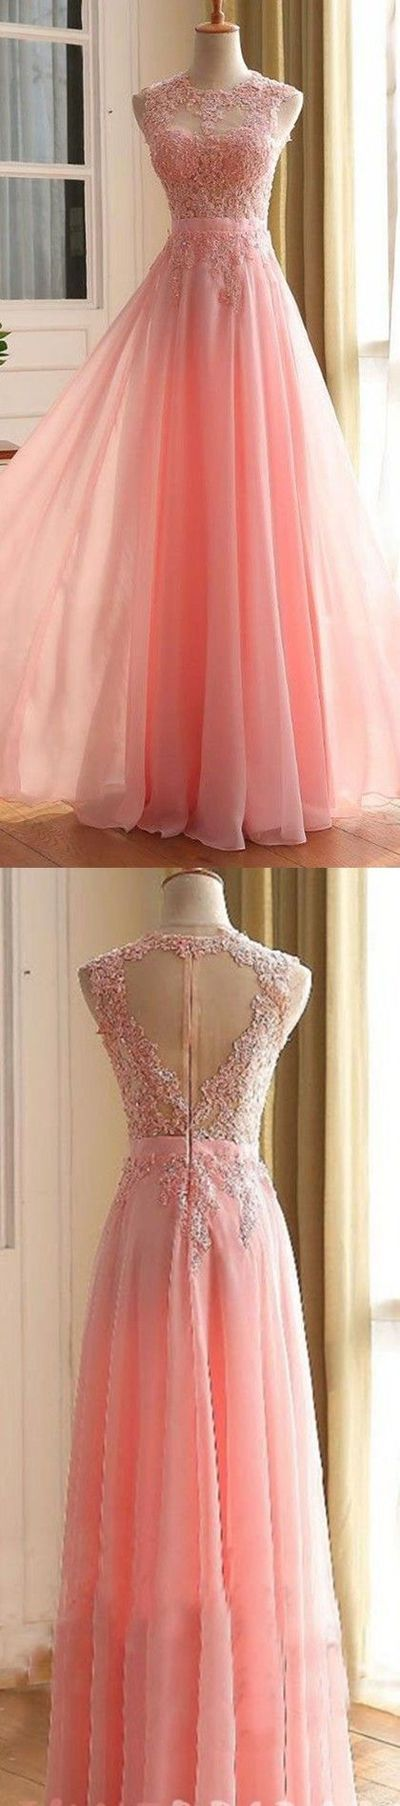 Pink Backless Lace Sexy Party Prom Dresses 2017 new style fashion ...